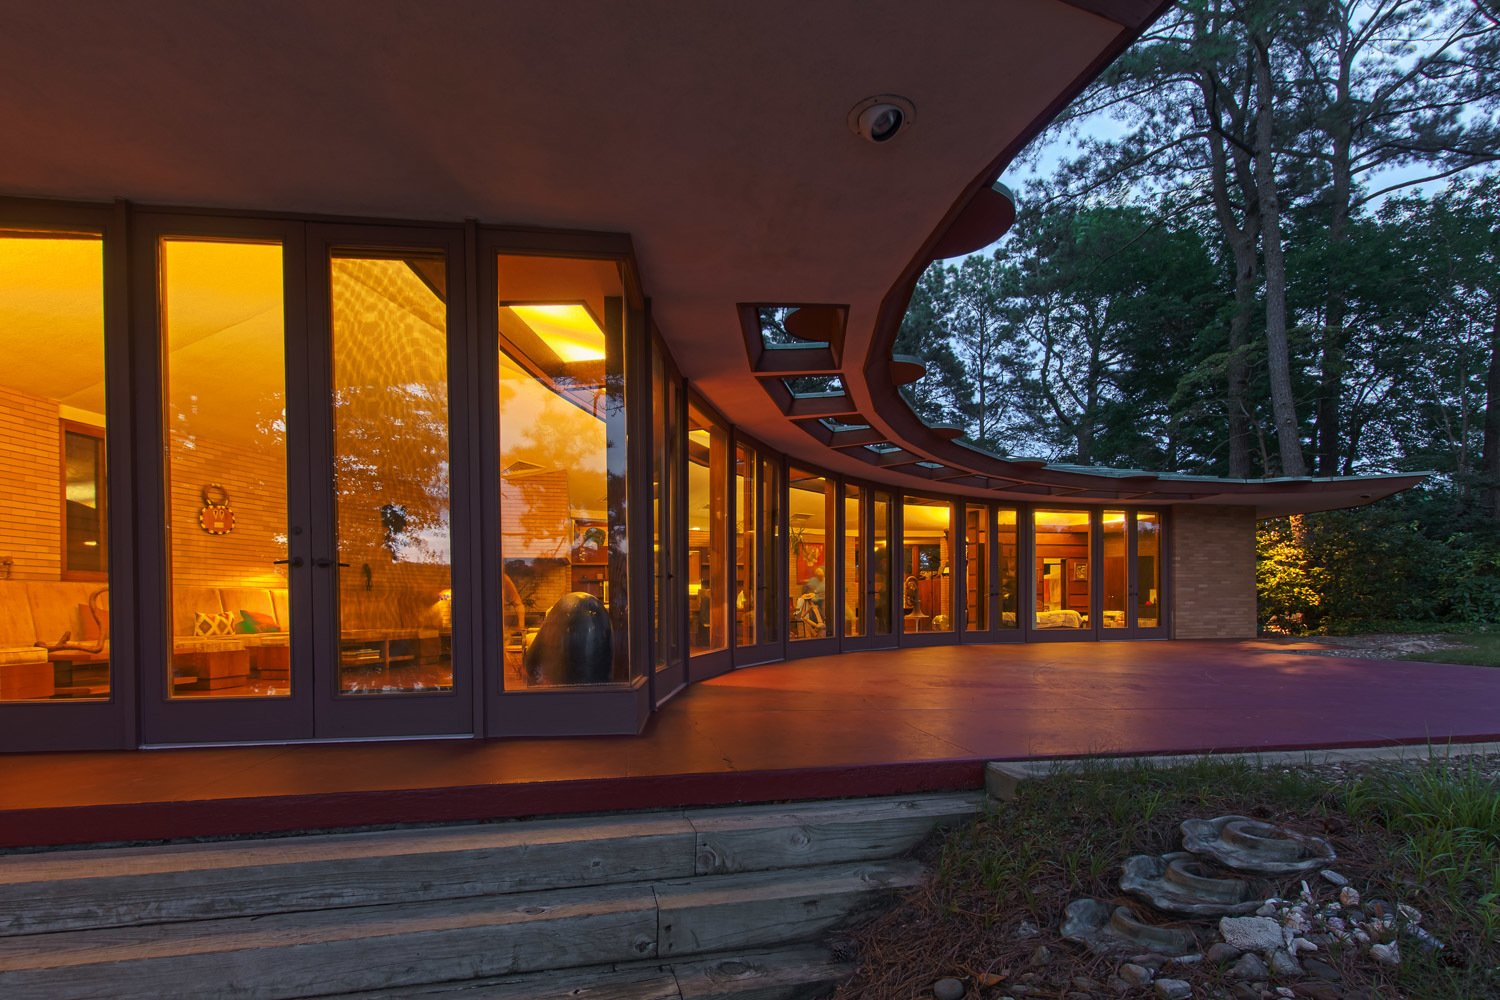 Photo 1 of 7 in You Can Own One of Frank Lloyd Wright's Final Homes for $2.75 Million